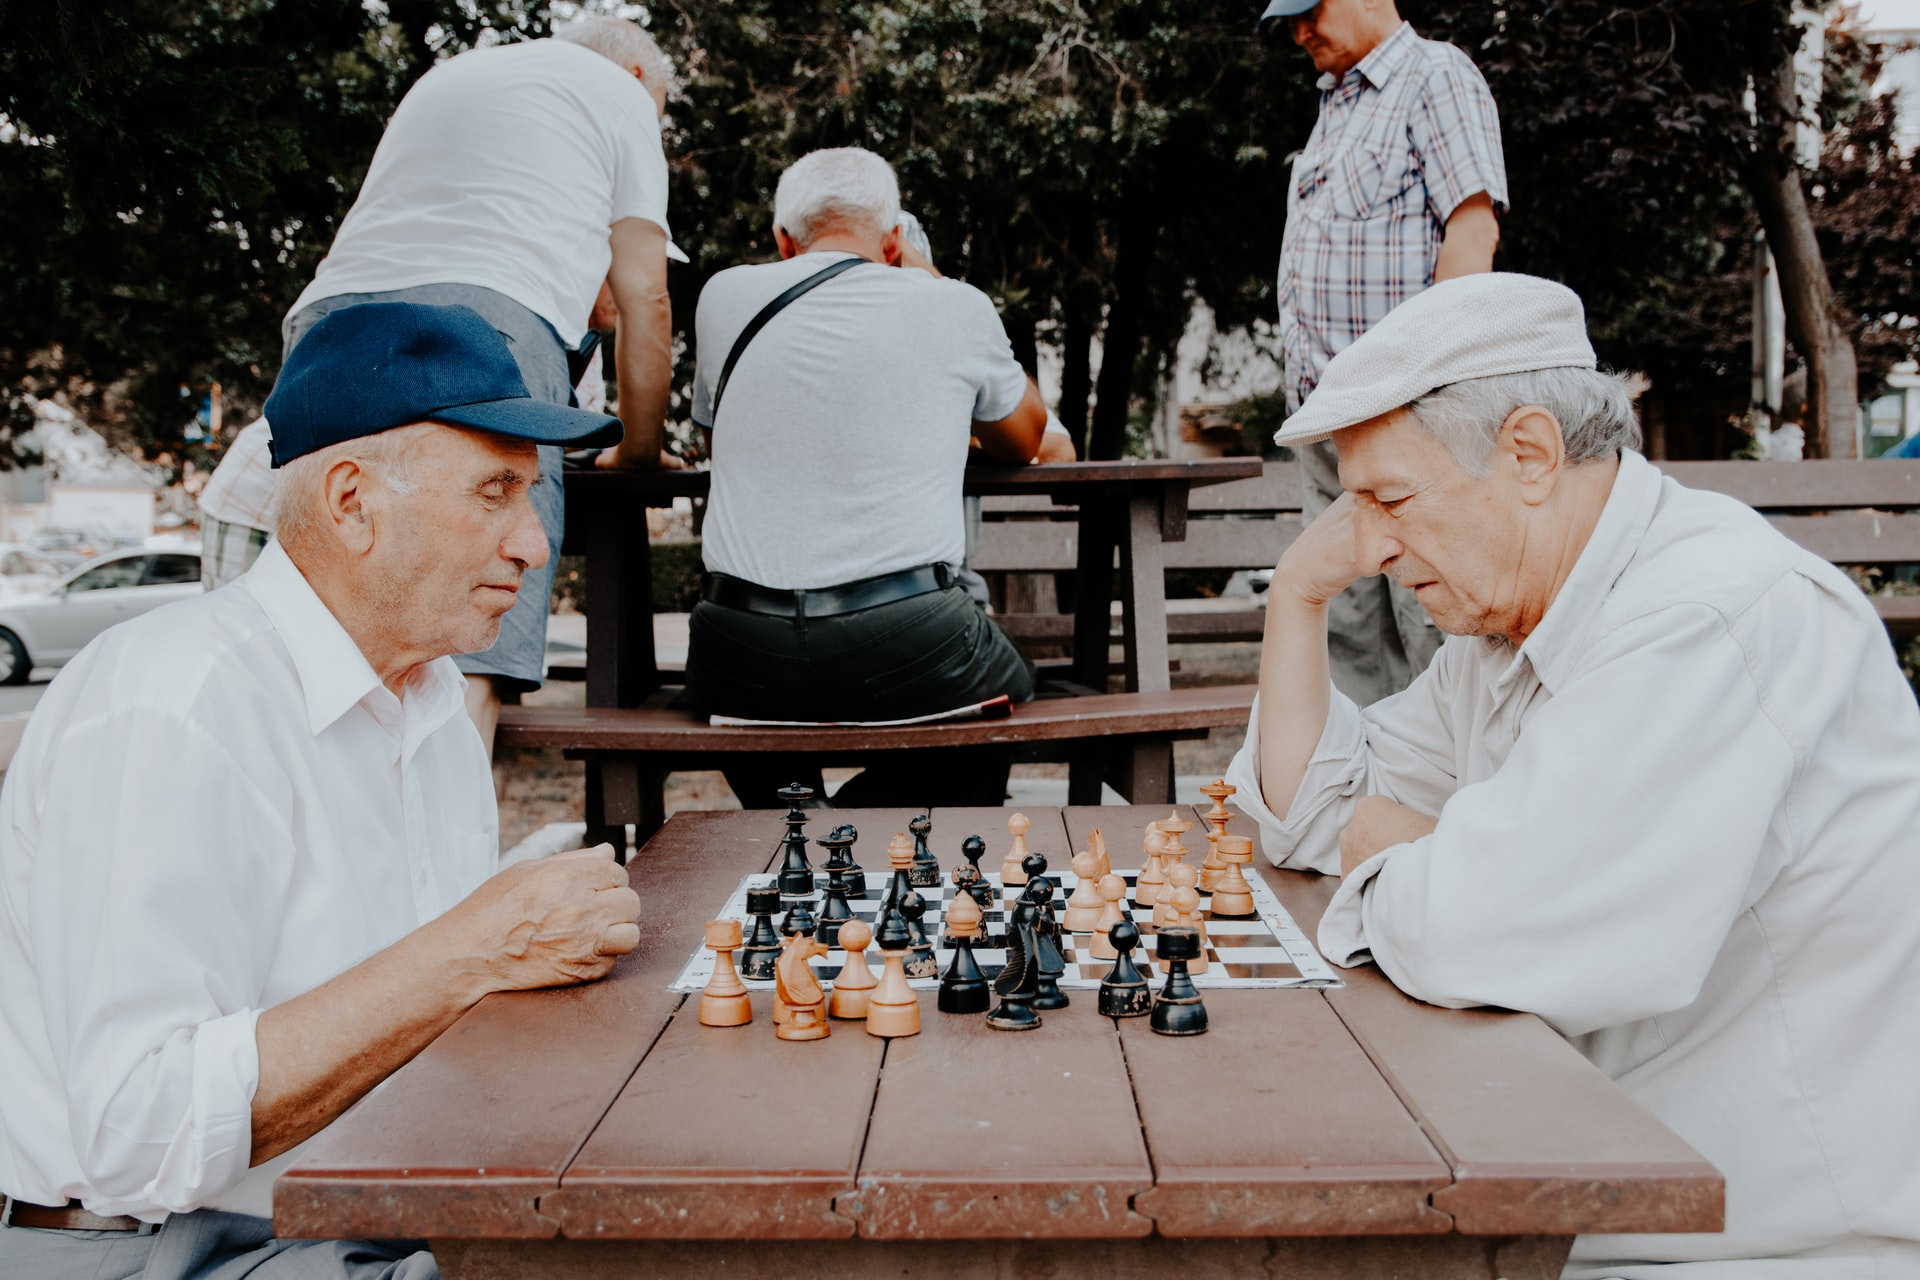 Healthy Aging and Fighting Dementia